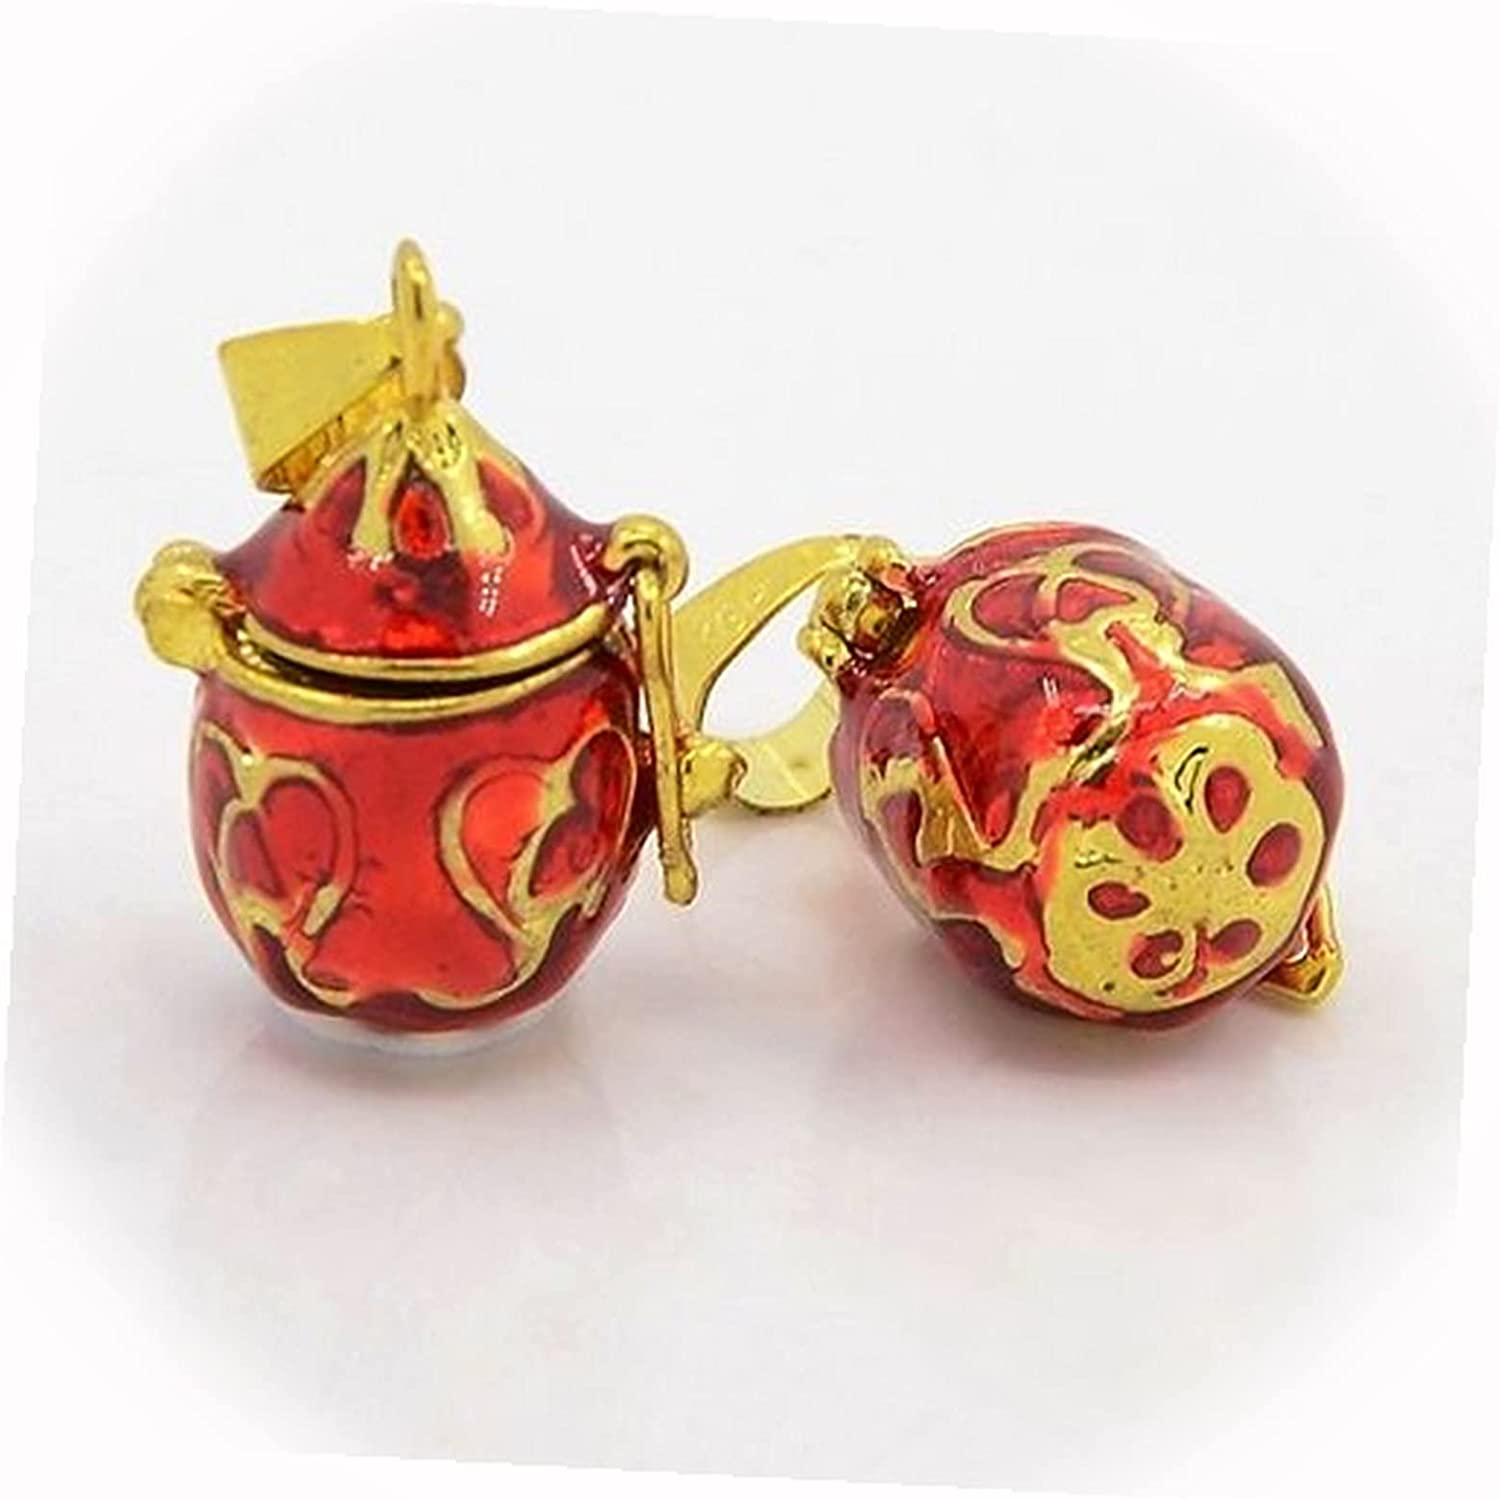 New Red Scrolled Teardrop Gold Wish or Locket Prayer Charm P Box Seattle Mall A surprise price is realized